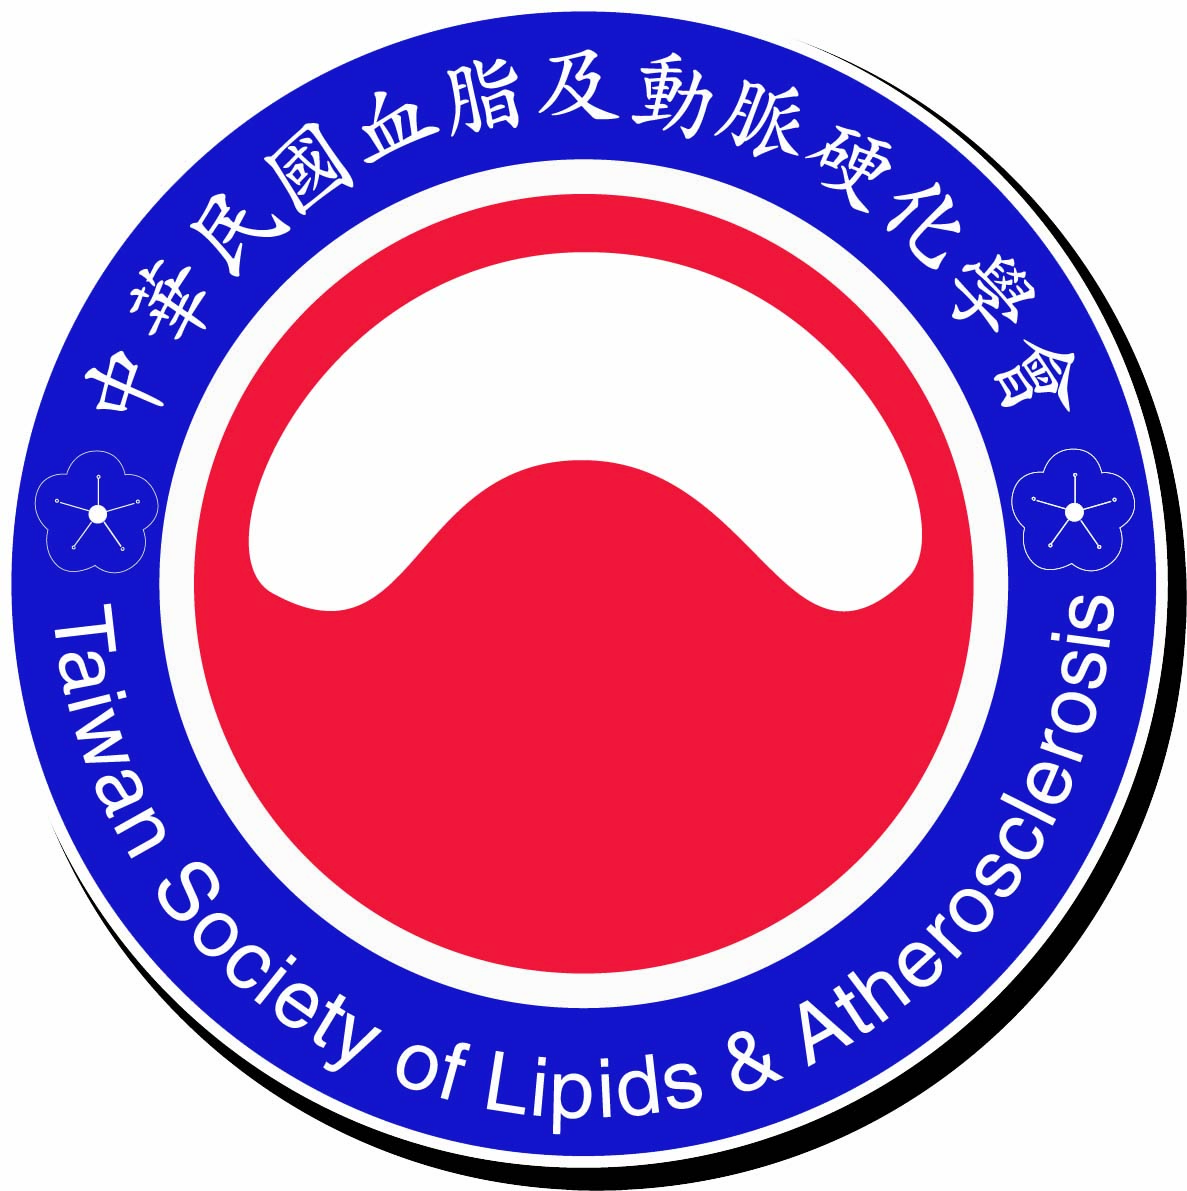 Taiwan Society of Lipids and Atherosclerosis